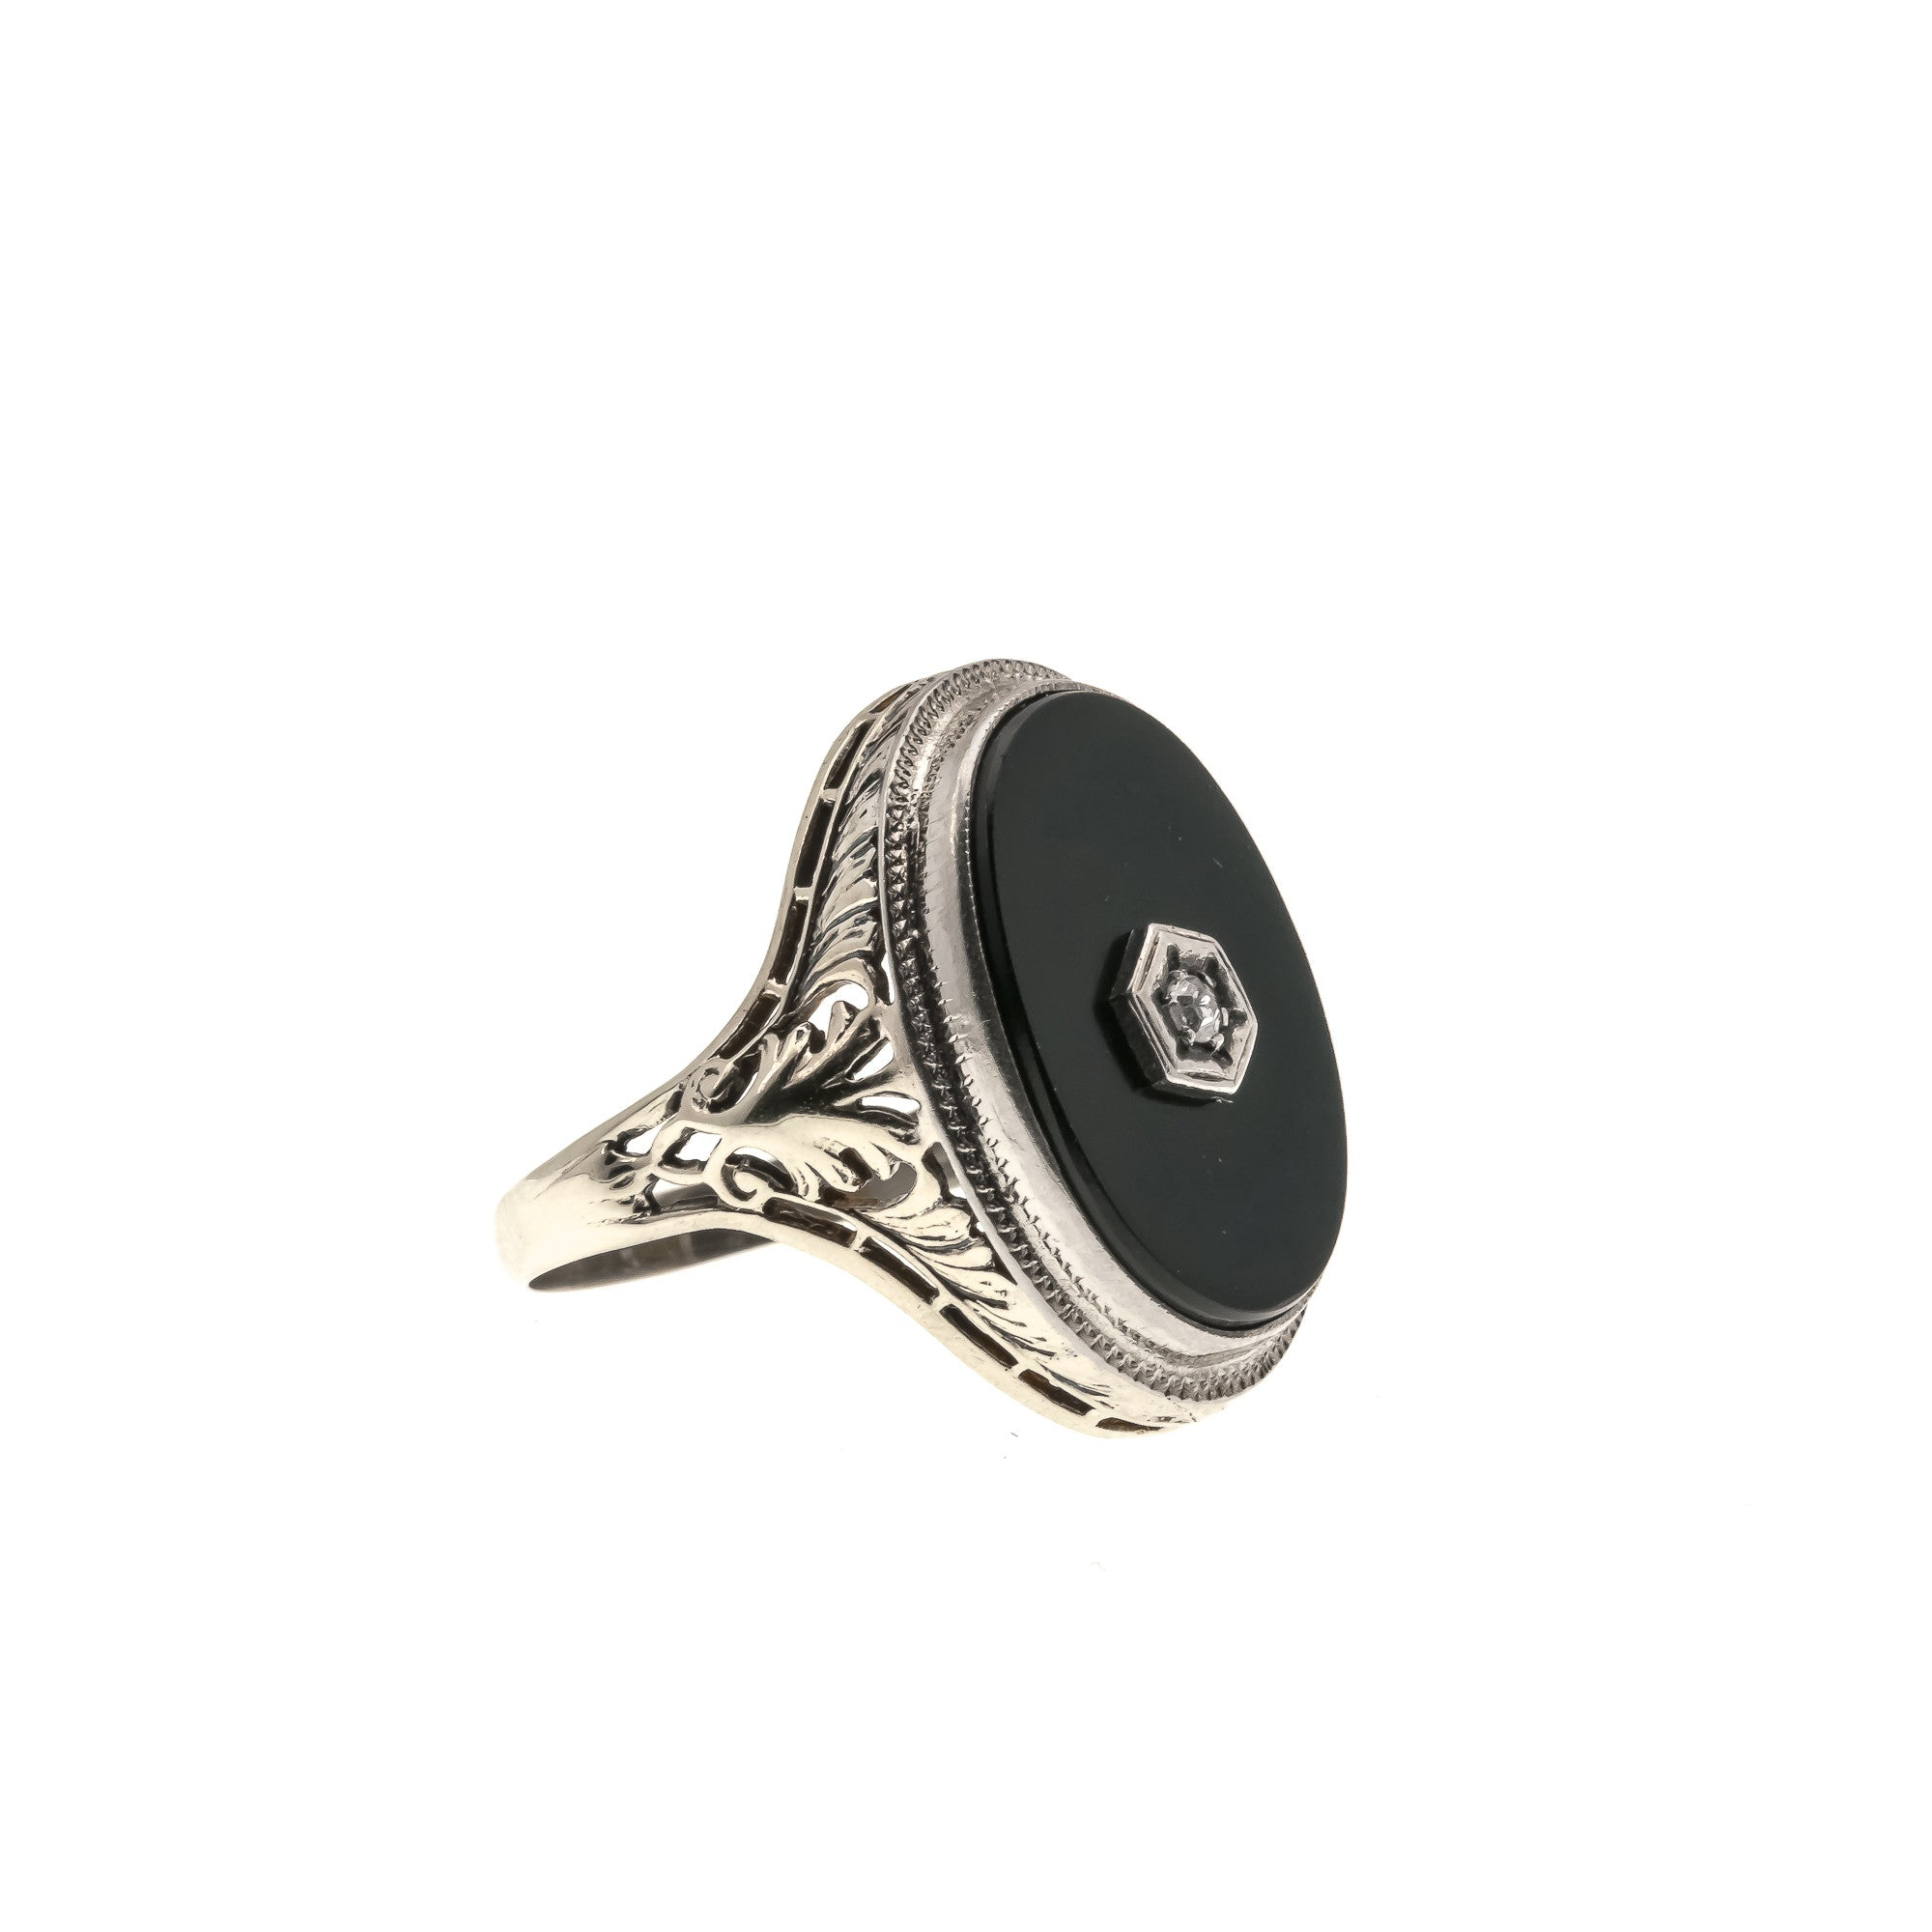 loading colette llc starburst wedding moda jewelry onyx signet rings black ring large by operandi